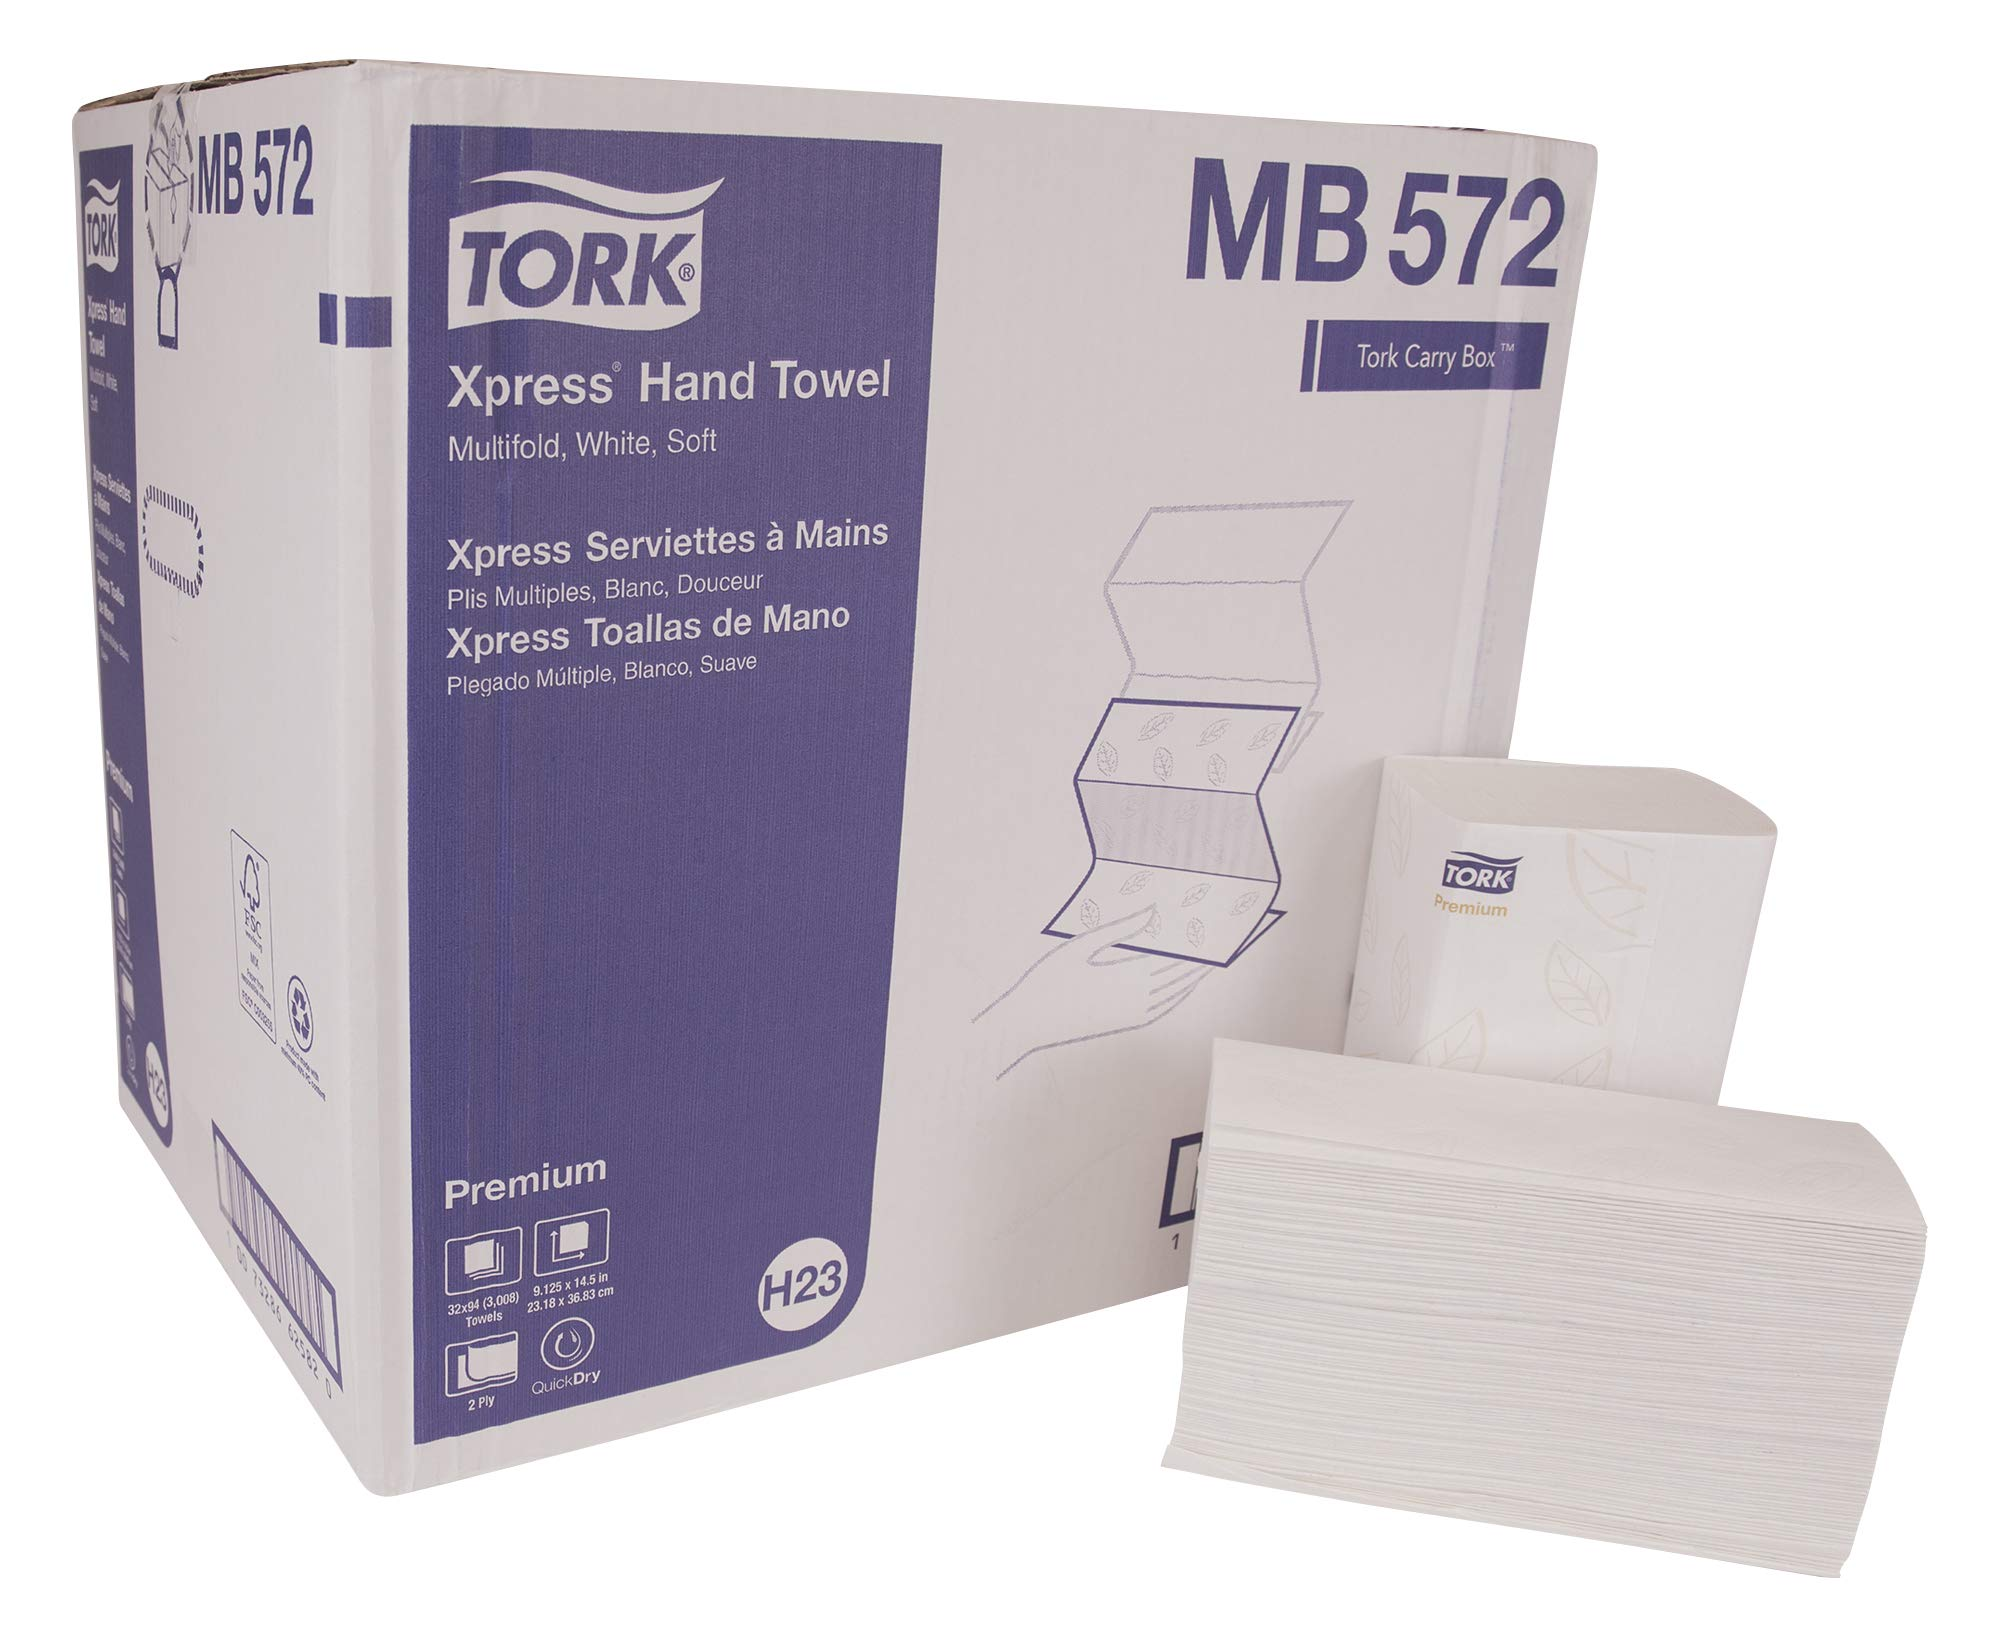 Tork Premium MB572 Soft Xpress Multifold Paper Hand Towel, 4-Panel, 2-Ply, 9.125'' Width x 3.625'' Length, White (Case of 32 Packs, 94 per Pack, 3,008 Towels)